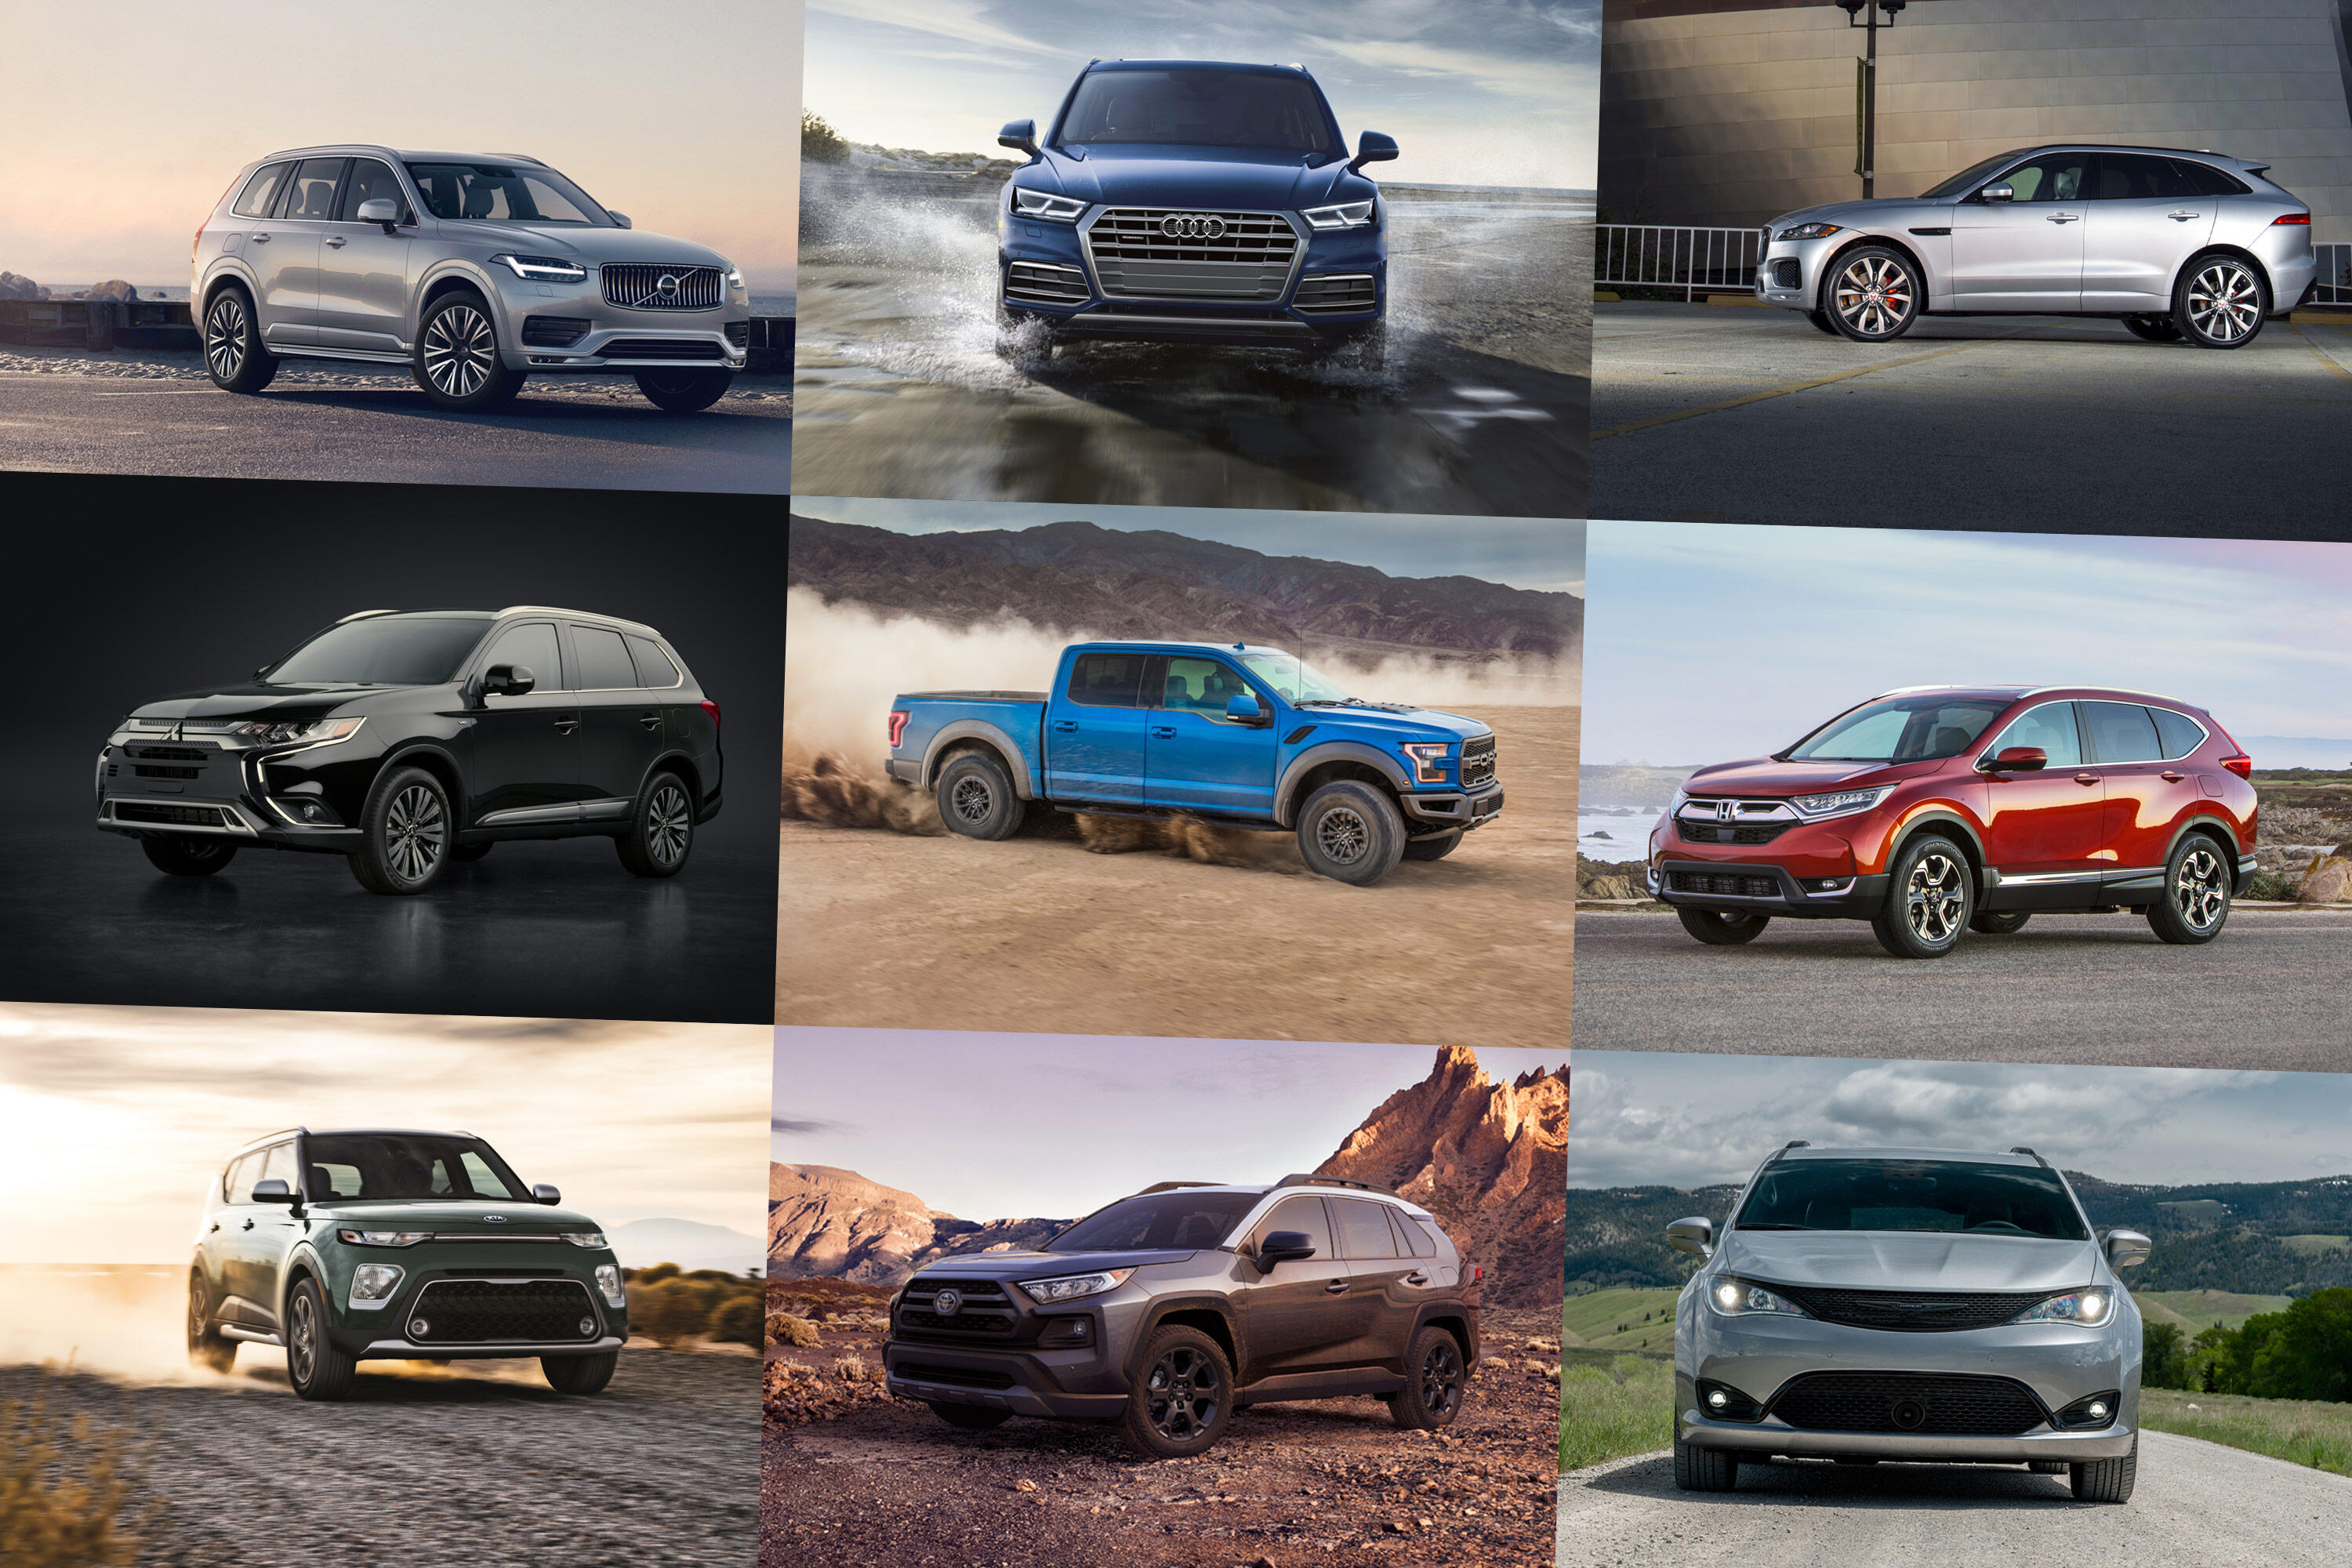 The Best-Selling Vehicles in 2019